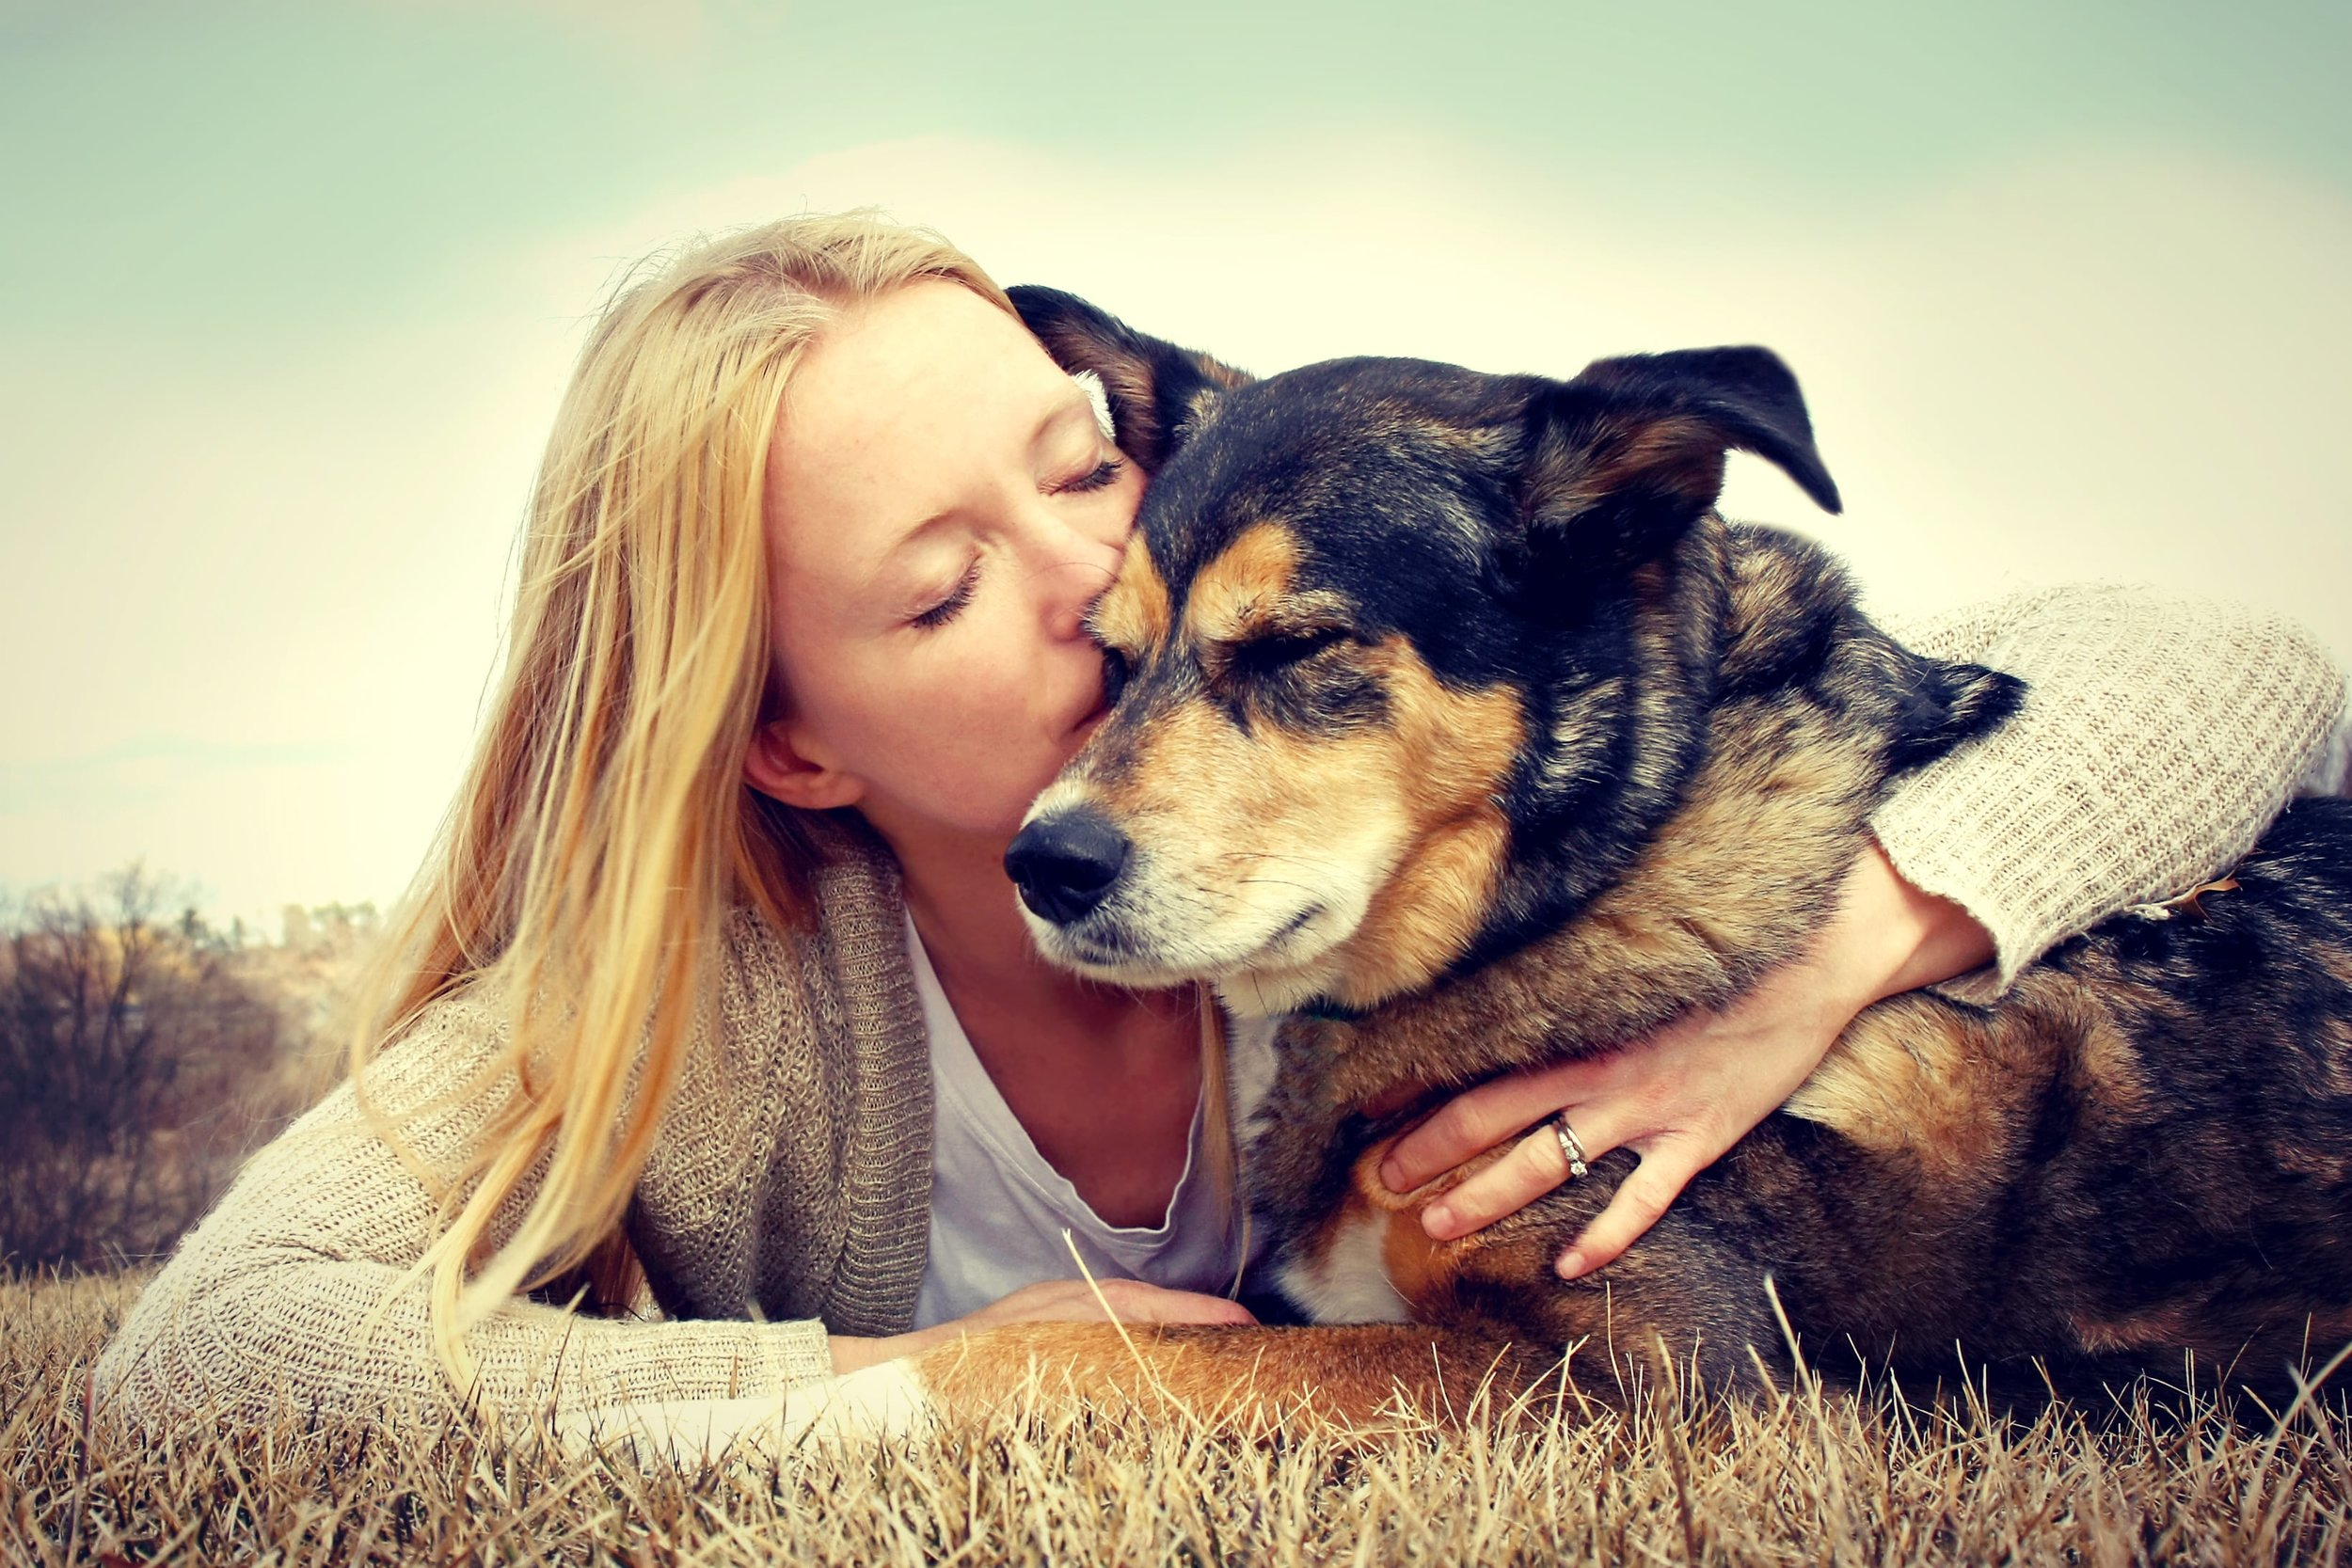 Rehoming a new dog guide and help, informationto help you prepare and what to expect.